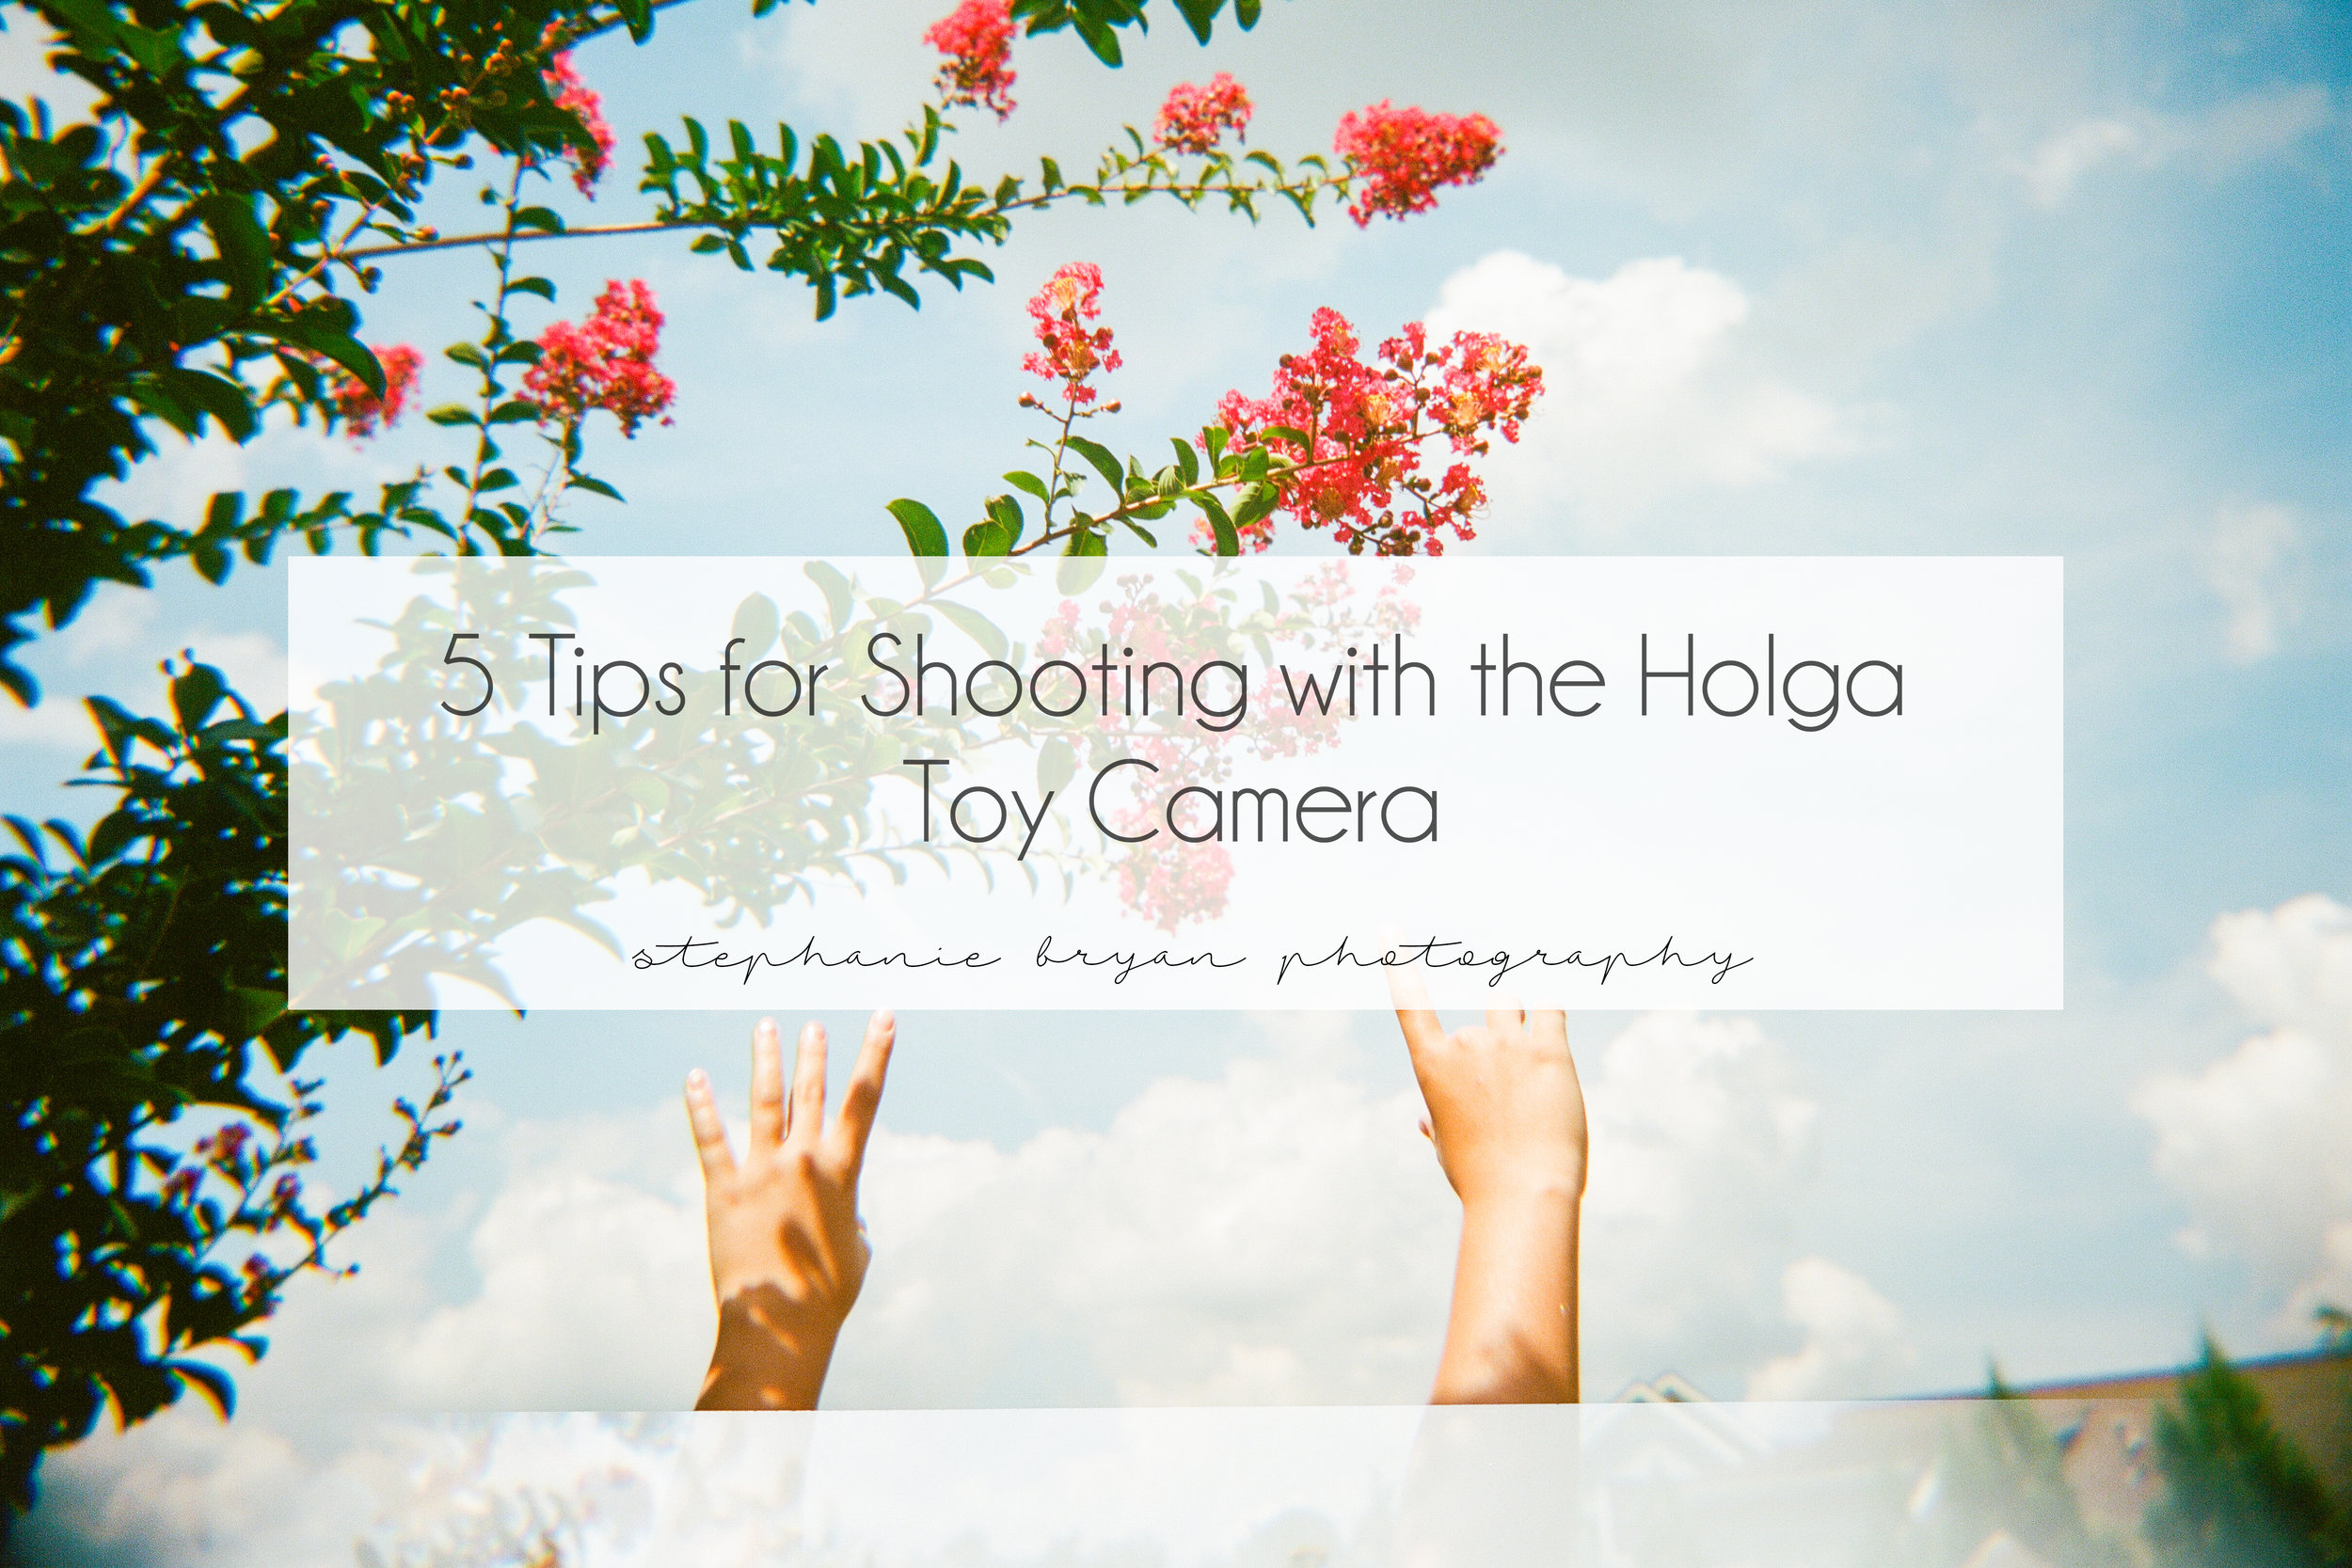 tips-for-shooting-with-holga-toy-film-camera-analogue-photography-tutorial.jpg